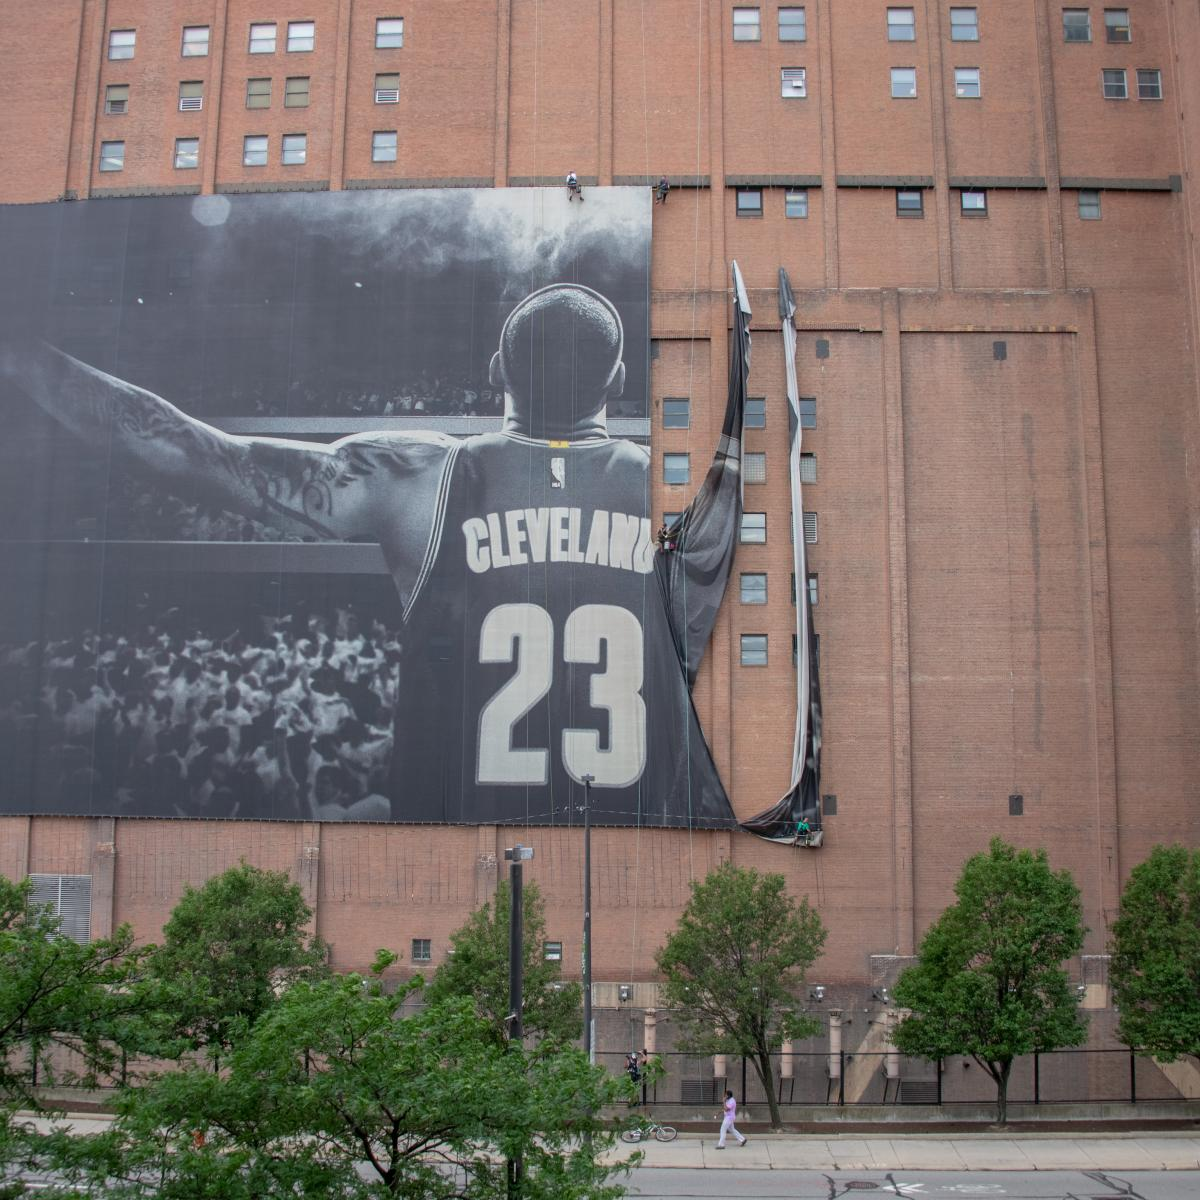 Cleveland's LeBron James Mural to Be Replaced by 'Guardian of Traffic' Collage